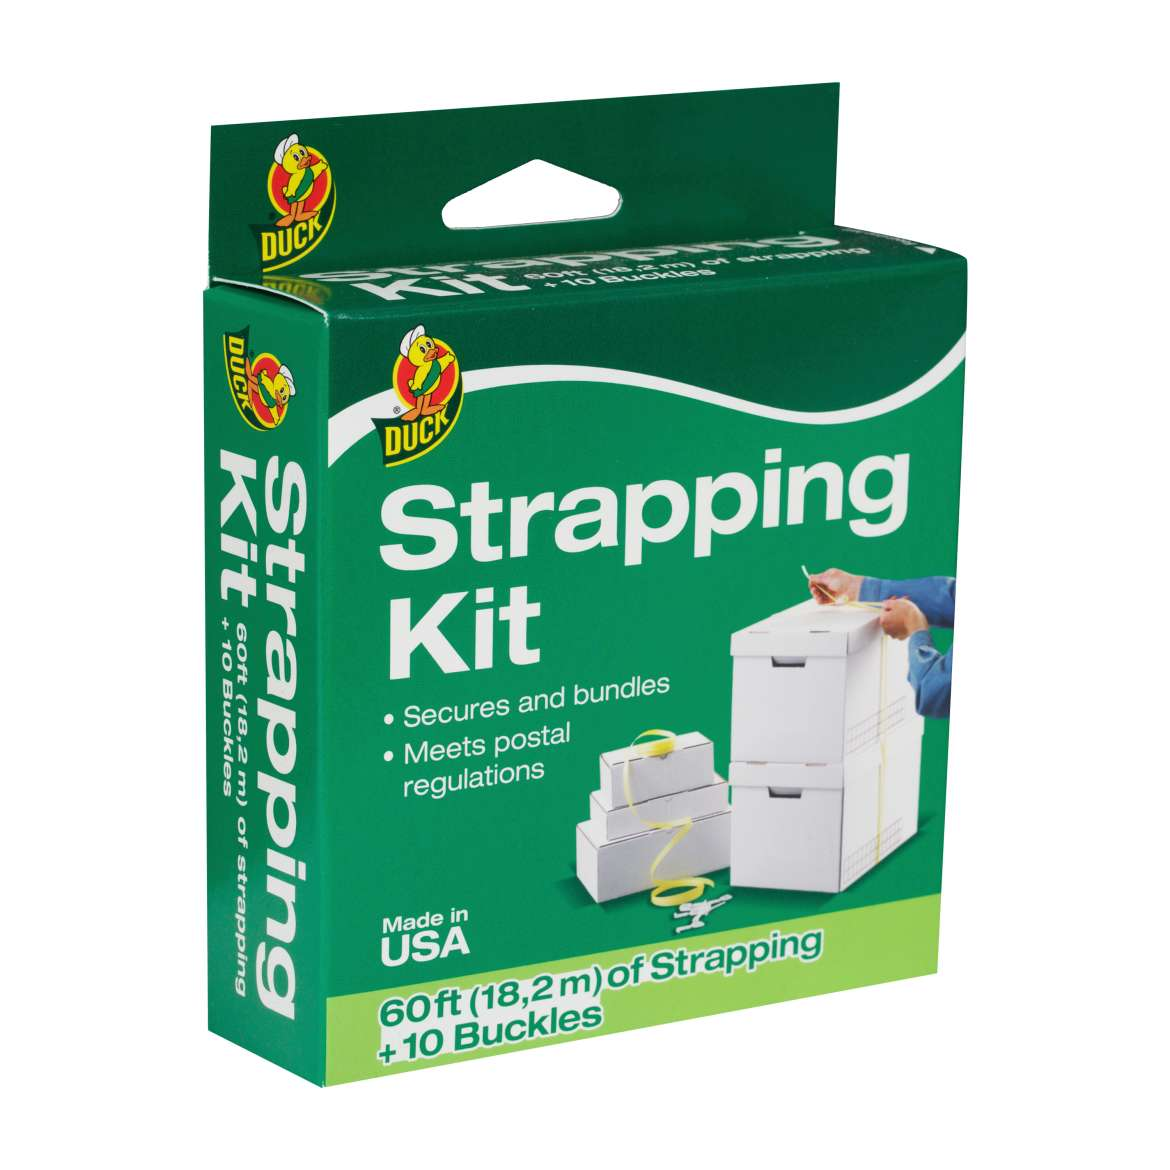 Strapping Kit Image